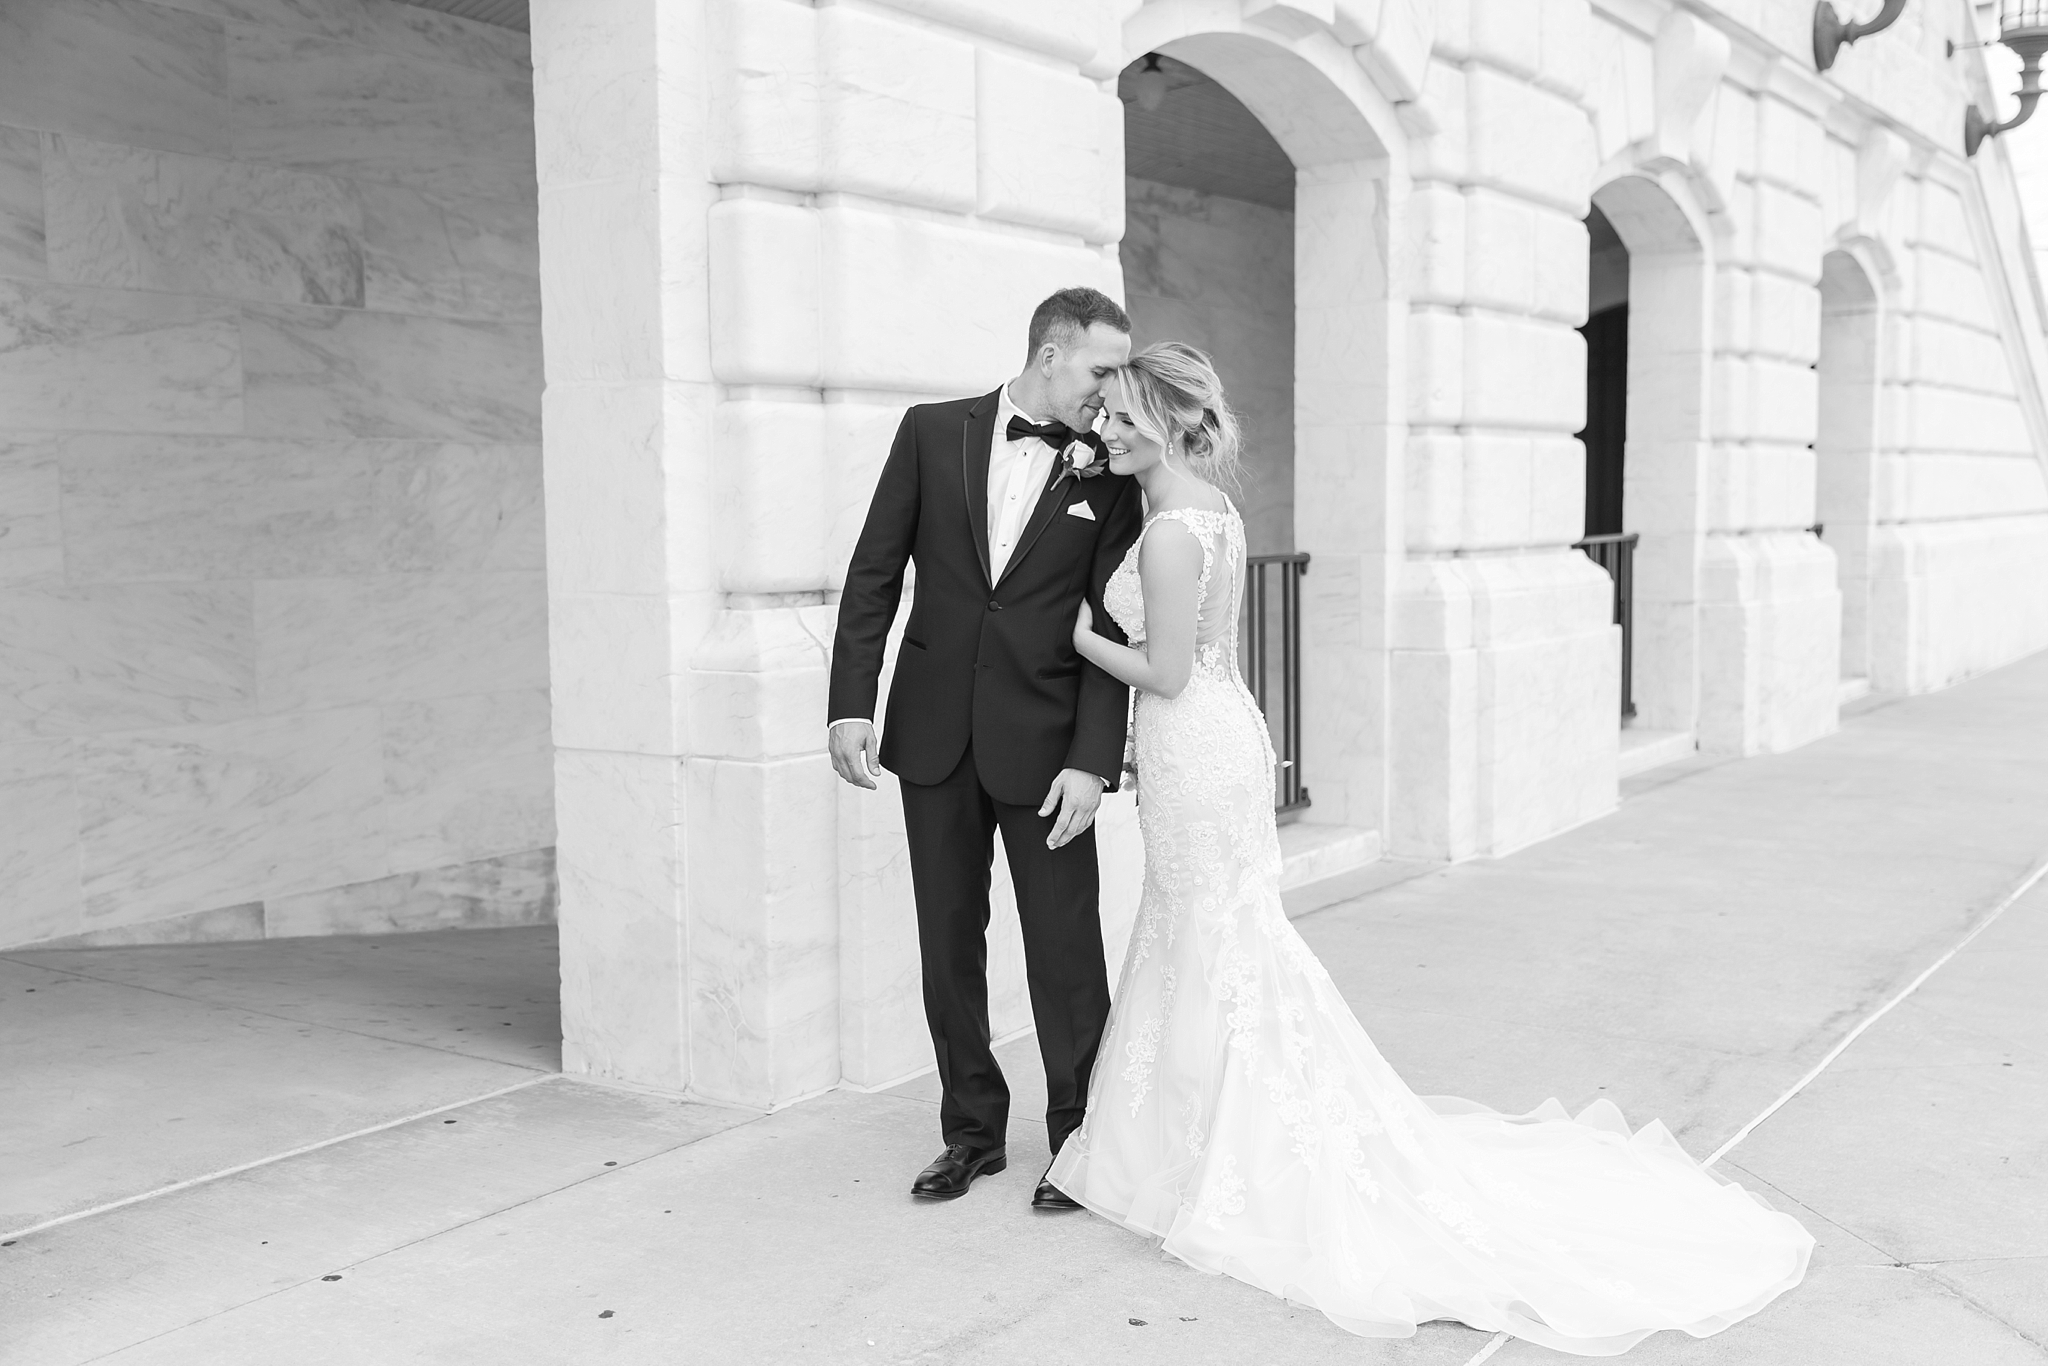 candid-romantic-wedding-photos-at-the-masonic-temple-belle-isle-detroit-institute-of-arts-in-detroit-michigan-by-courtney-carolyn-photography_0062.jpg